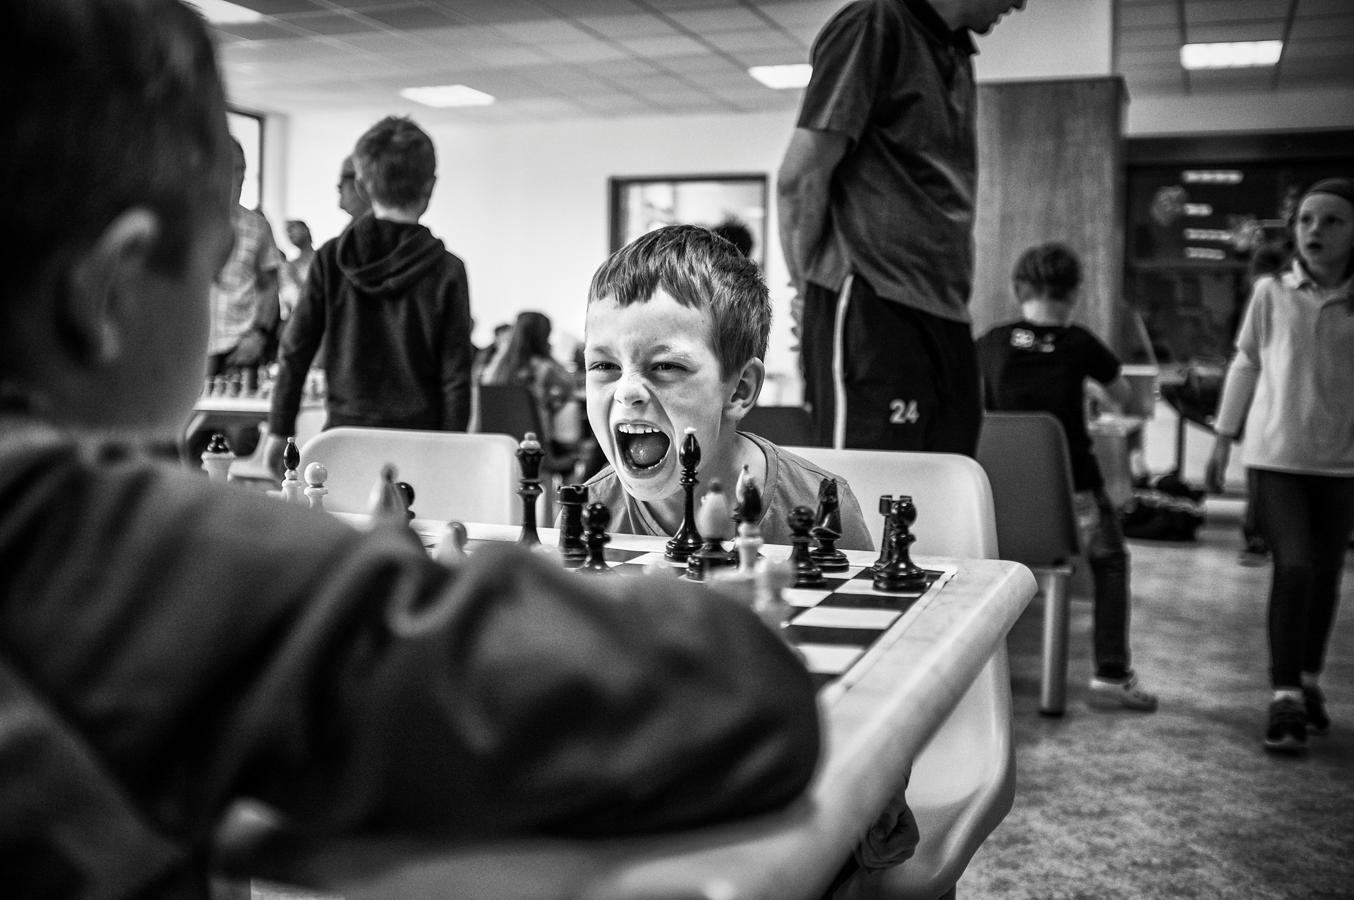 2º premio Historias. Youth Chess Tournaments, de Michael Hanke